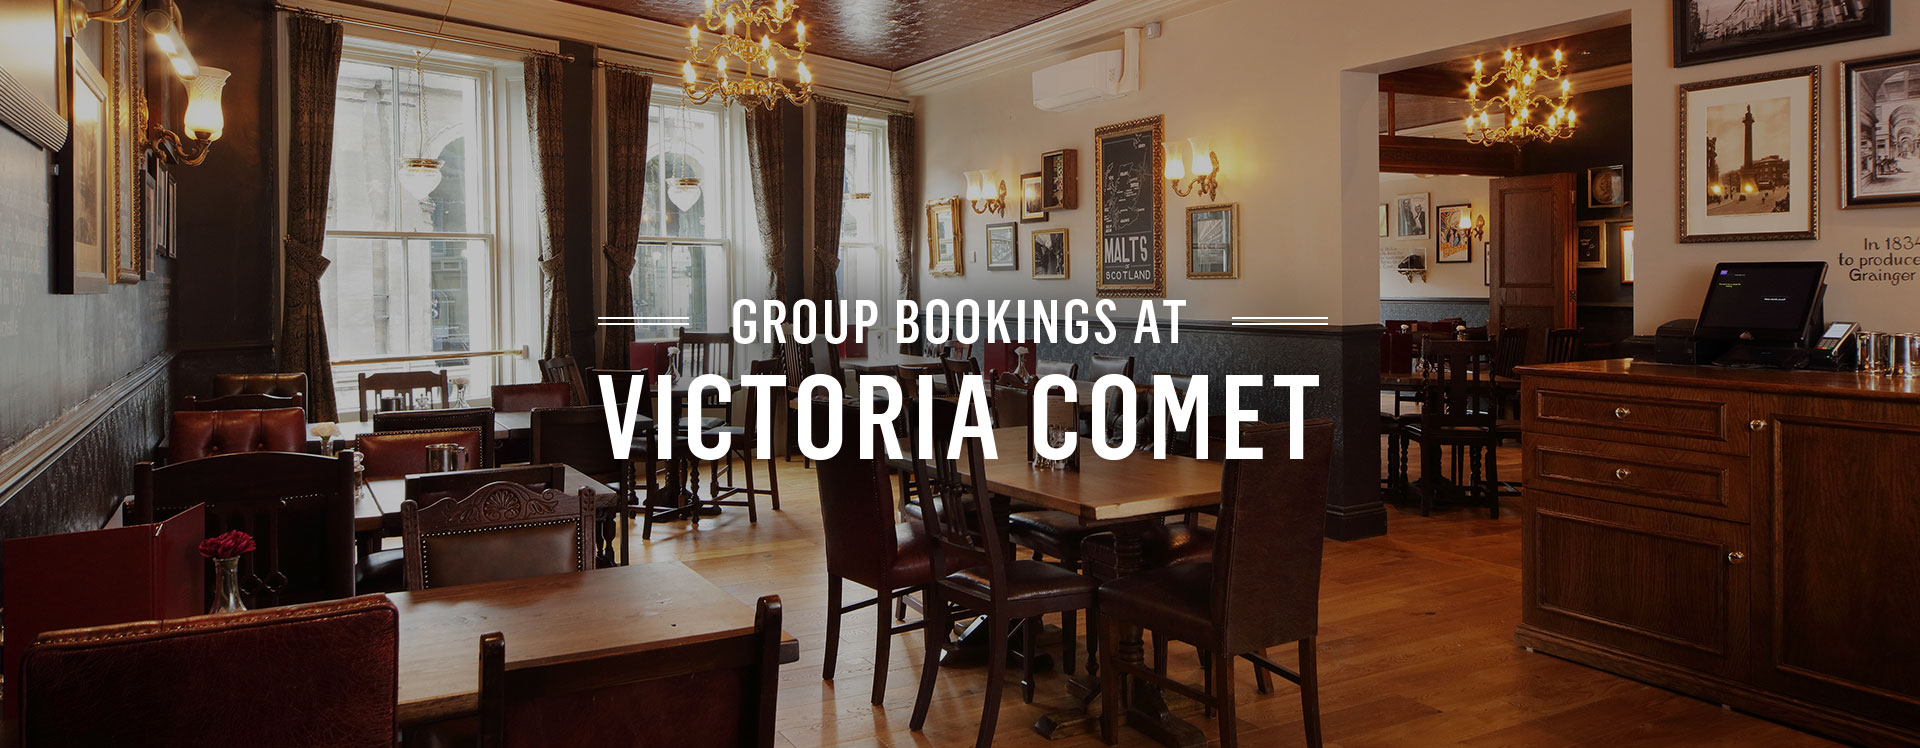 Group Bookings at The Victoria Comet